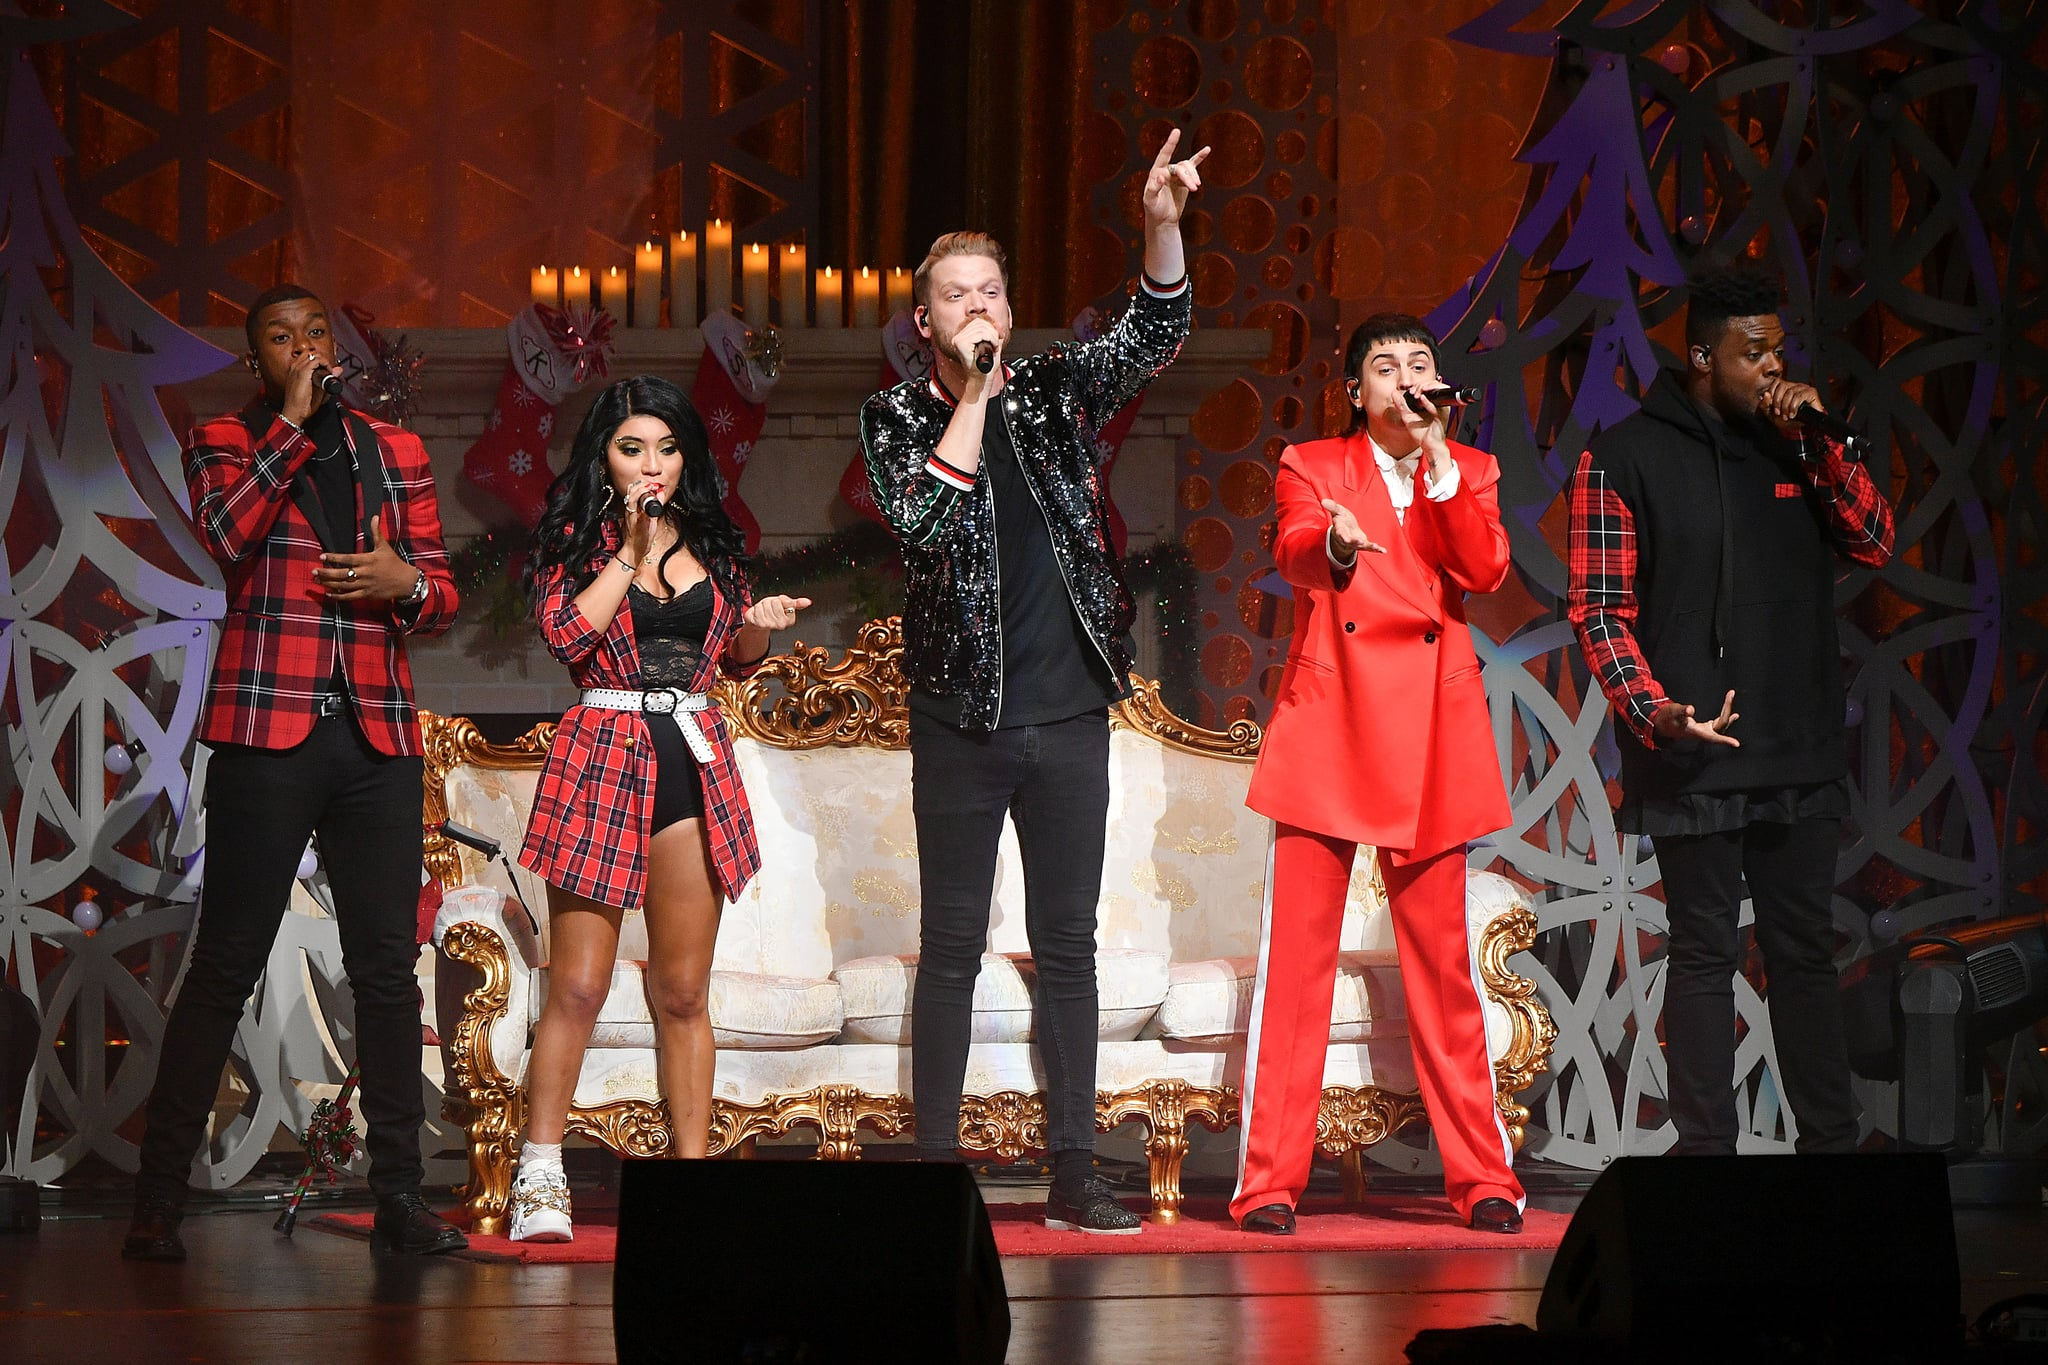 NEW YORK, NEW YORK - DECEMBER 18:  (L-R)  Matt Sallee, Kirstin Maldonado, Scott Hoying, Mitch Grassi, and Kevin Olusola of Pentatonix perform onstage at The Beacon Theatre on December 18, 2018 in New York City. (Photo by Dia Dipasupil/Getty Images)